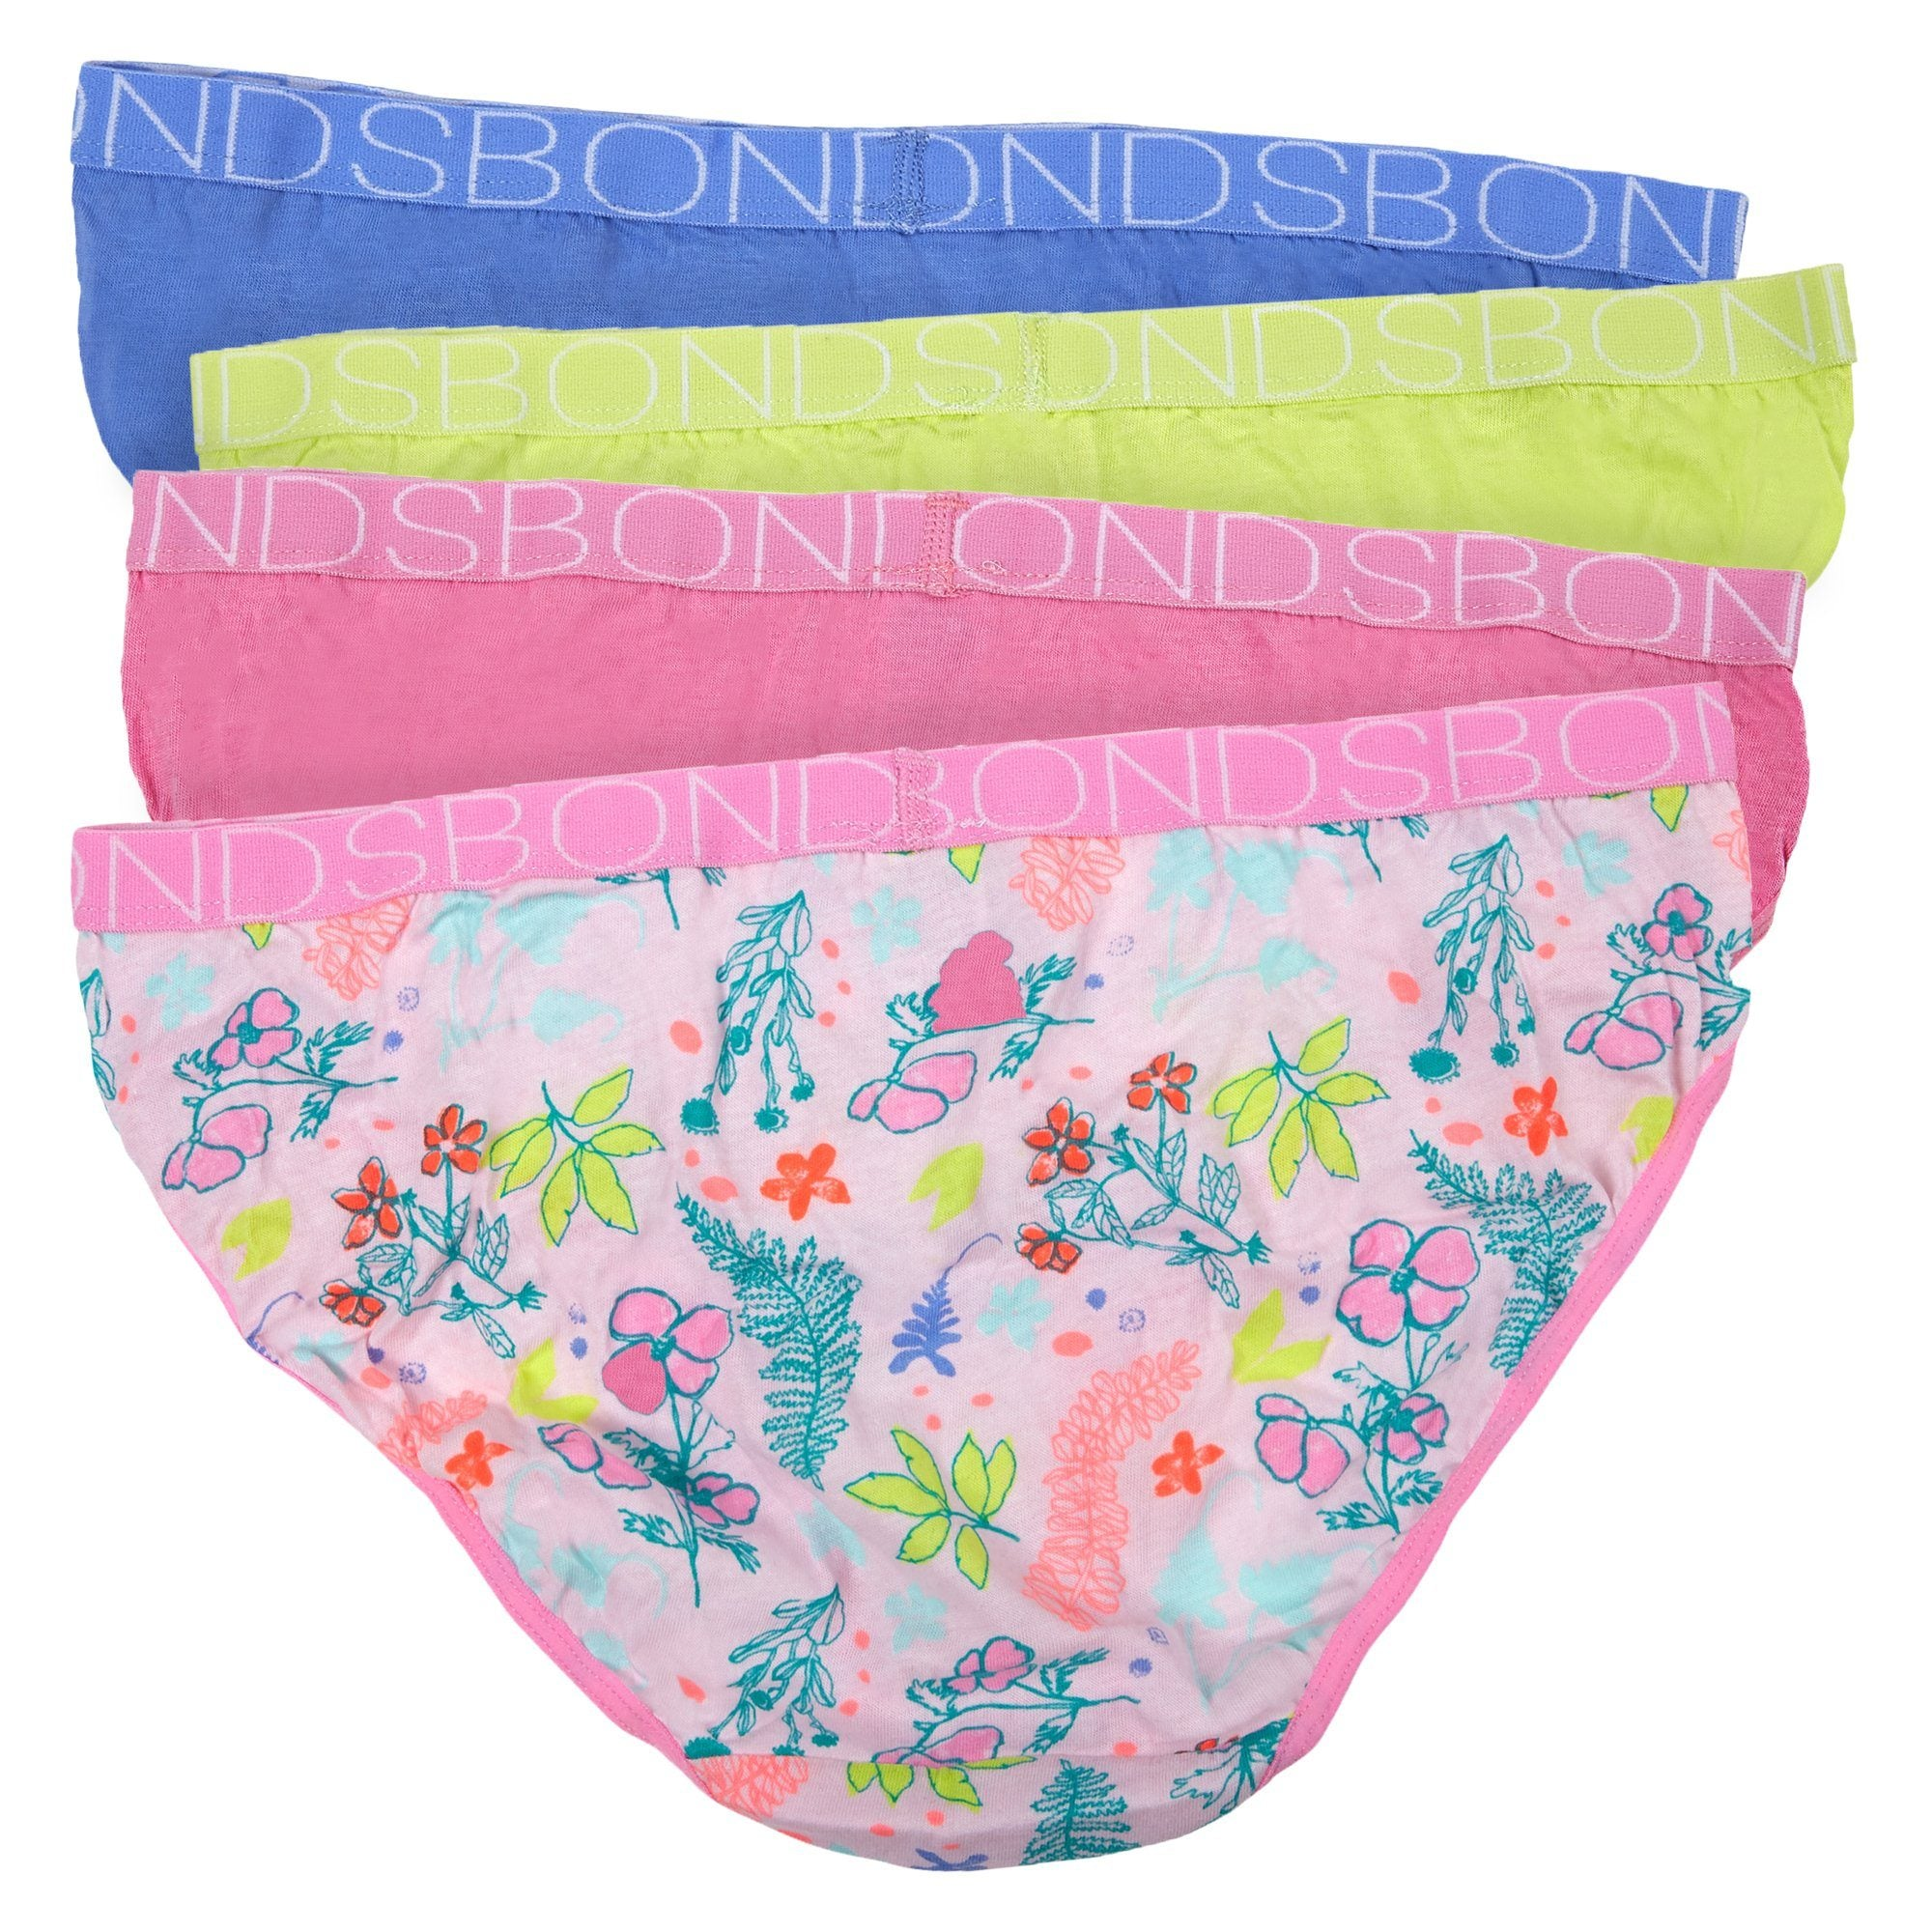 Bonds Children'S Underwear 4 Pack Bikini Pln - Print 75 Children's Underwear Bonds